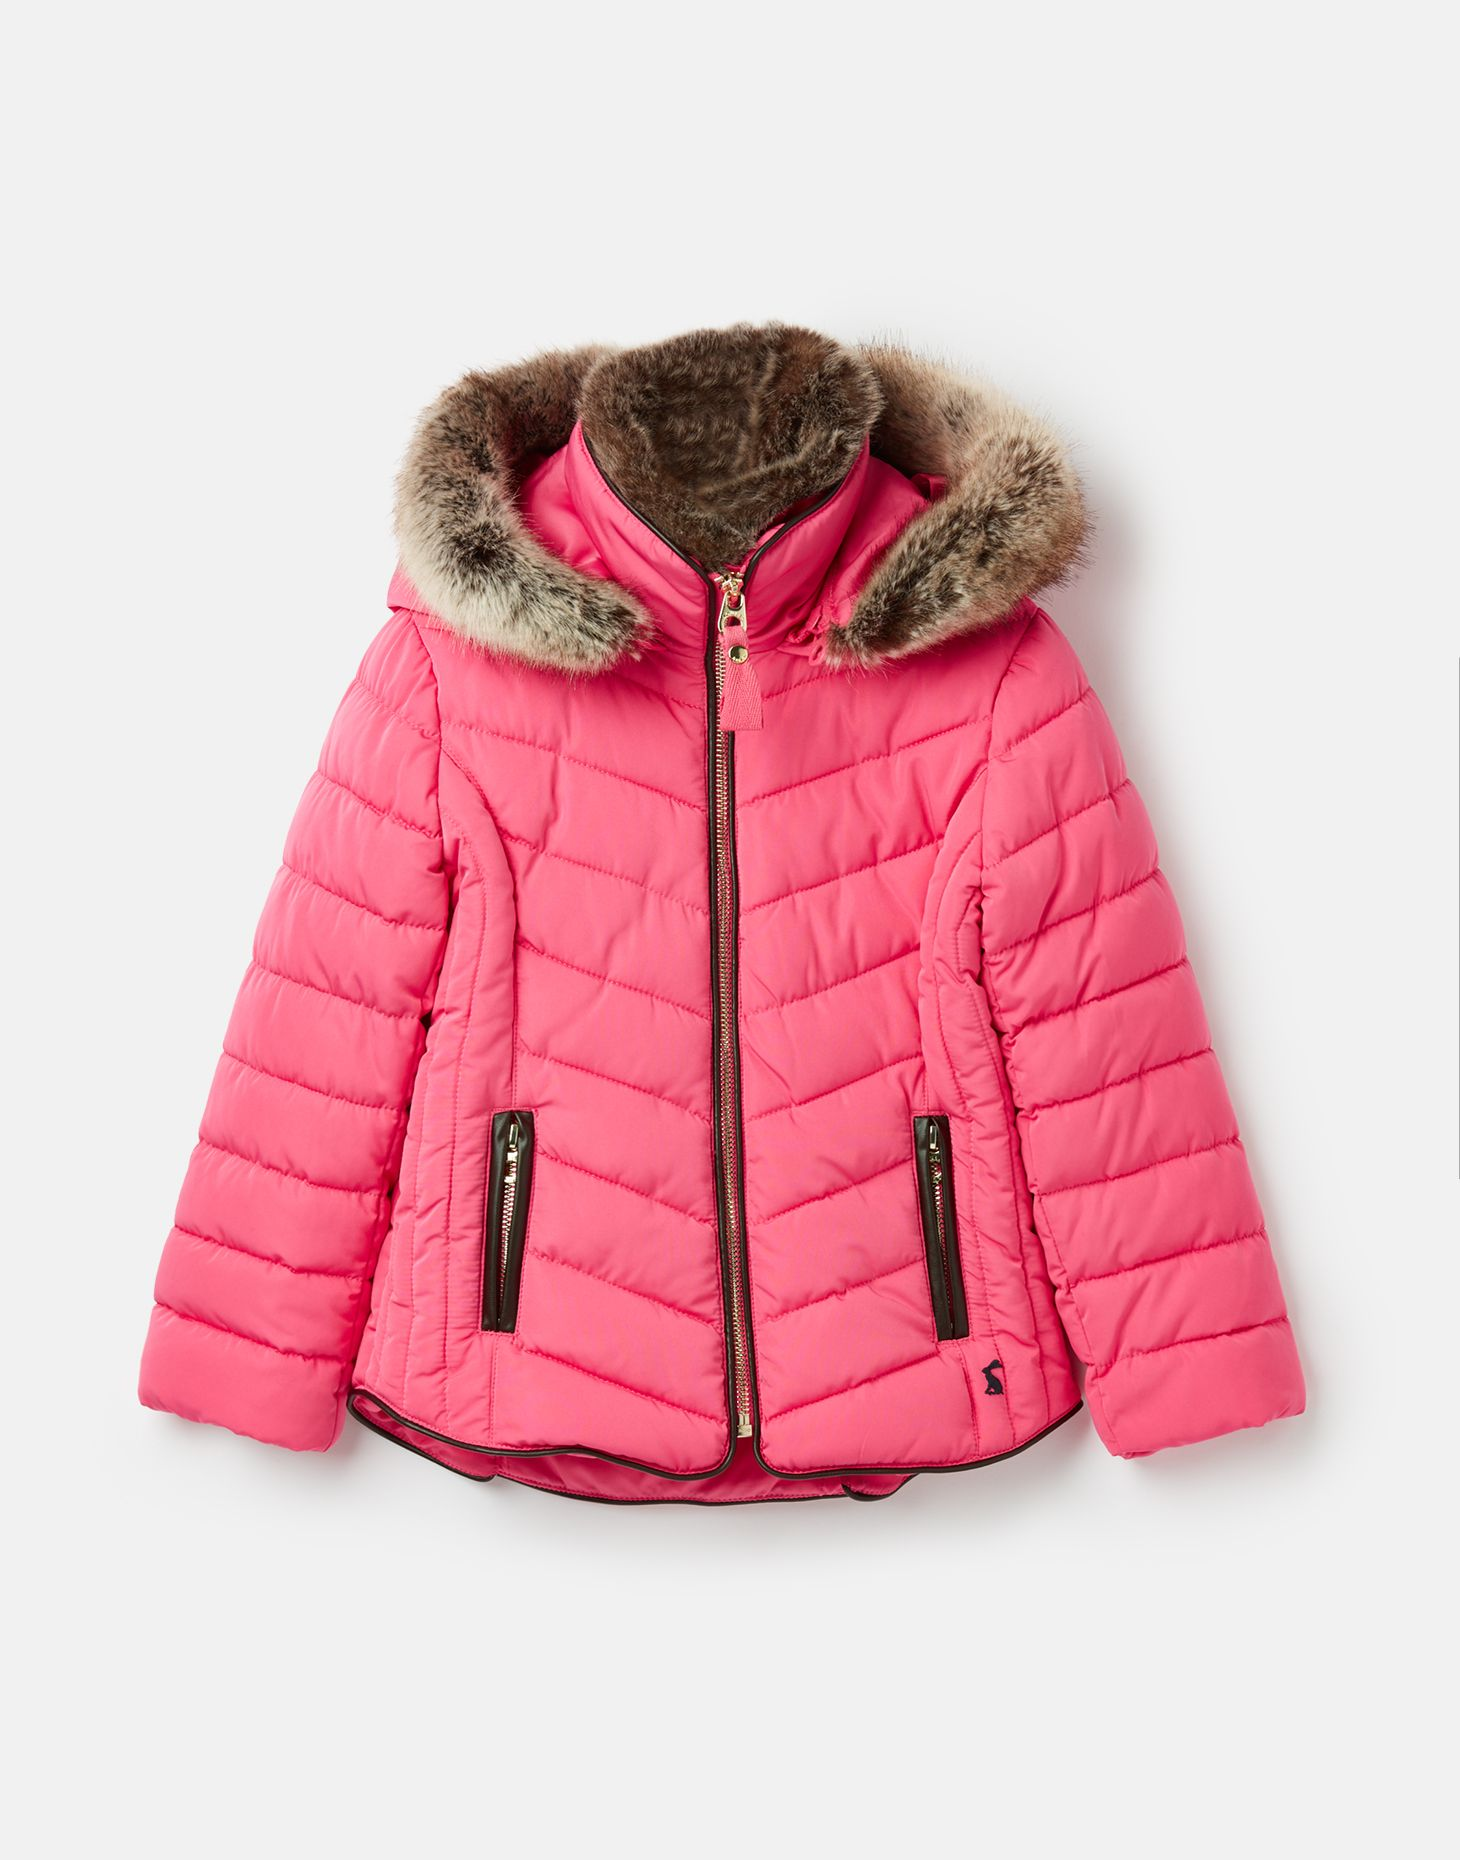 Joules Girls Gosling Quilted Coat 3 12 Years in MARINE NAVY